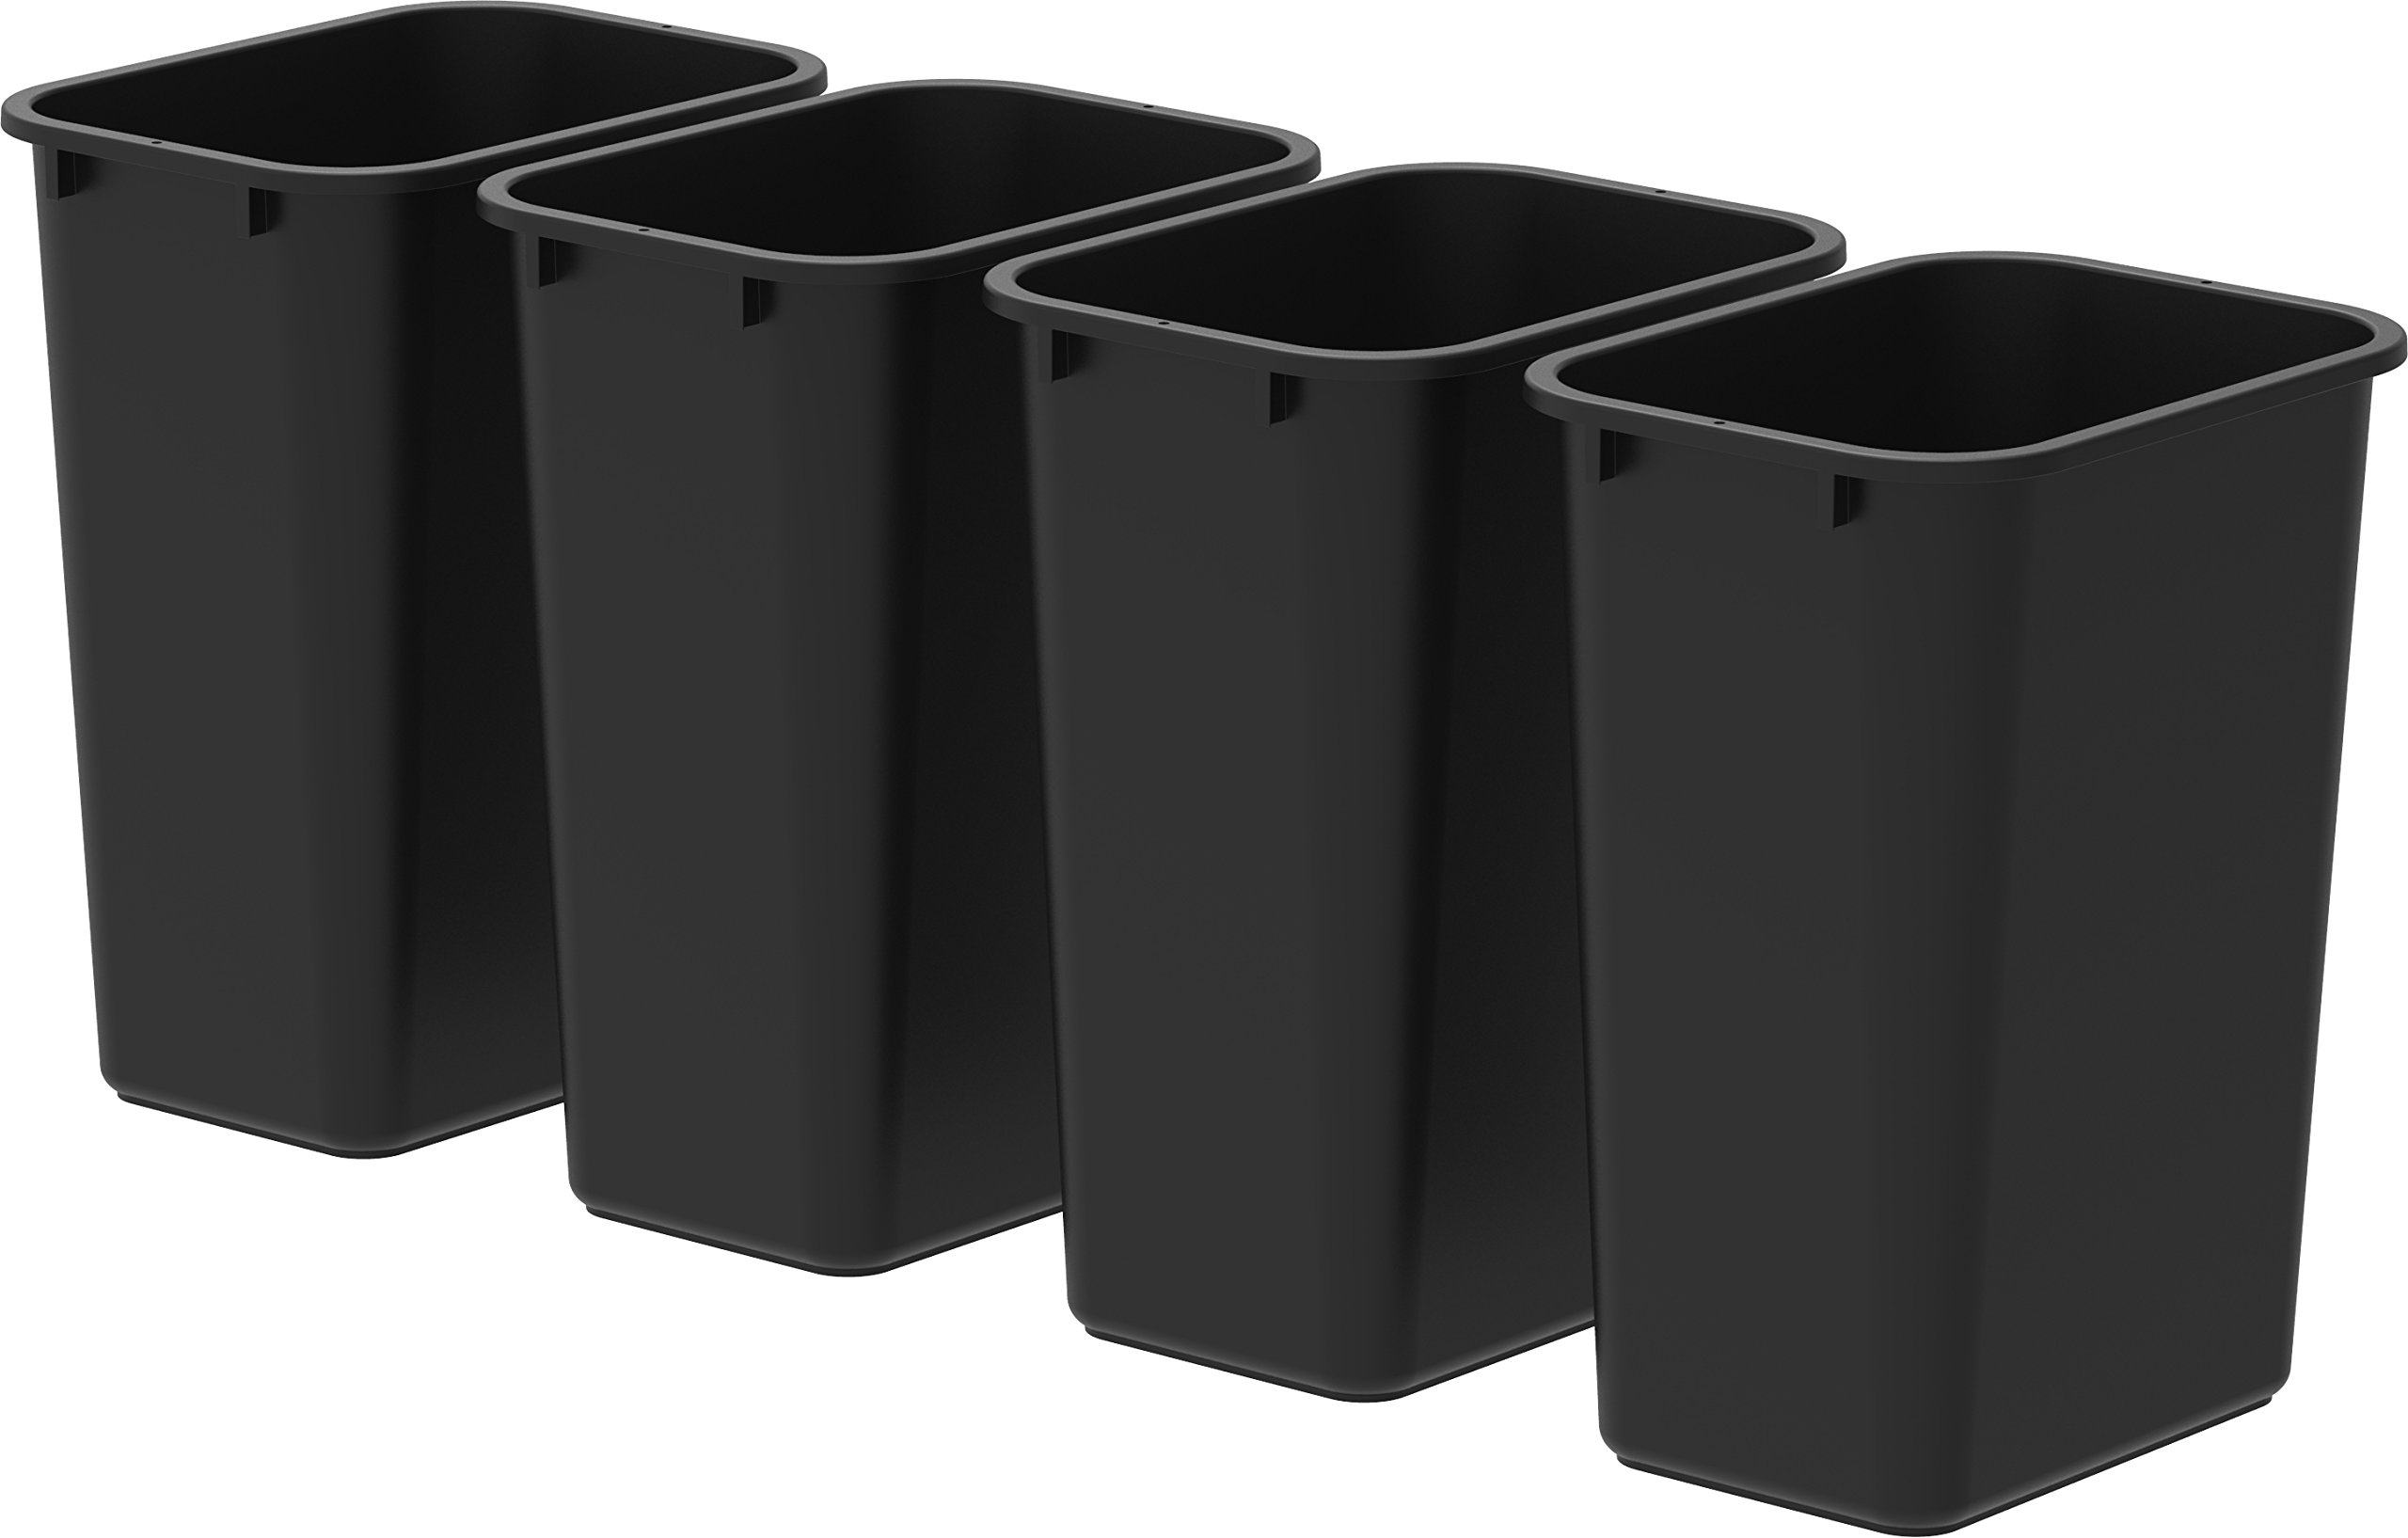 Storex Large/Tall Waste Basket, 15.5 x 11 x 20.75 Inches, Black, Case of 4 (00700U04C)